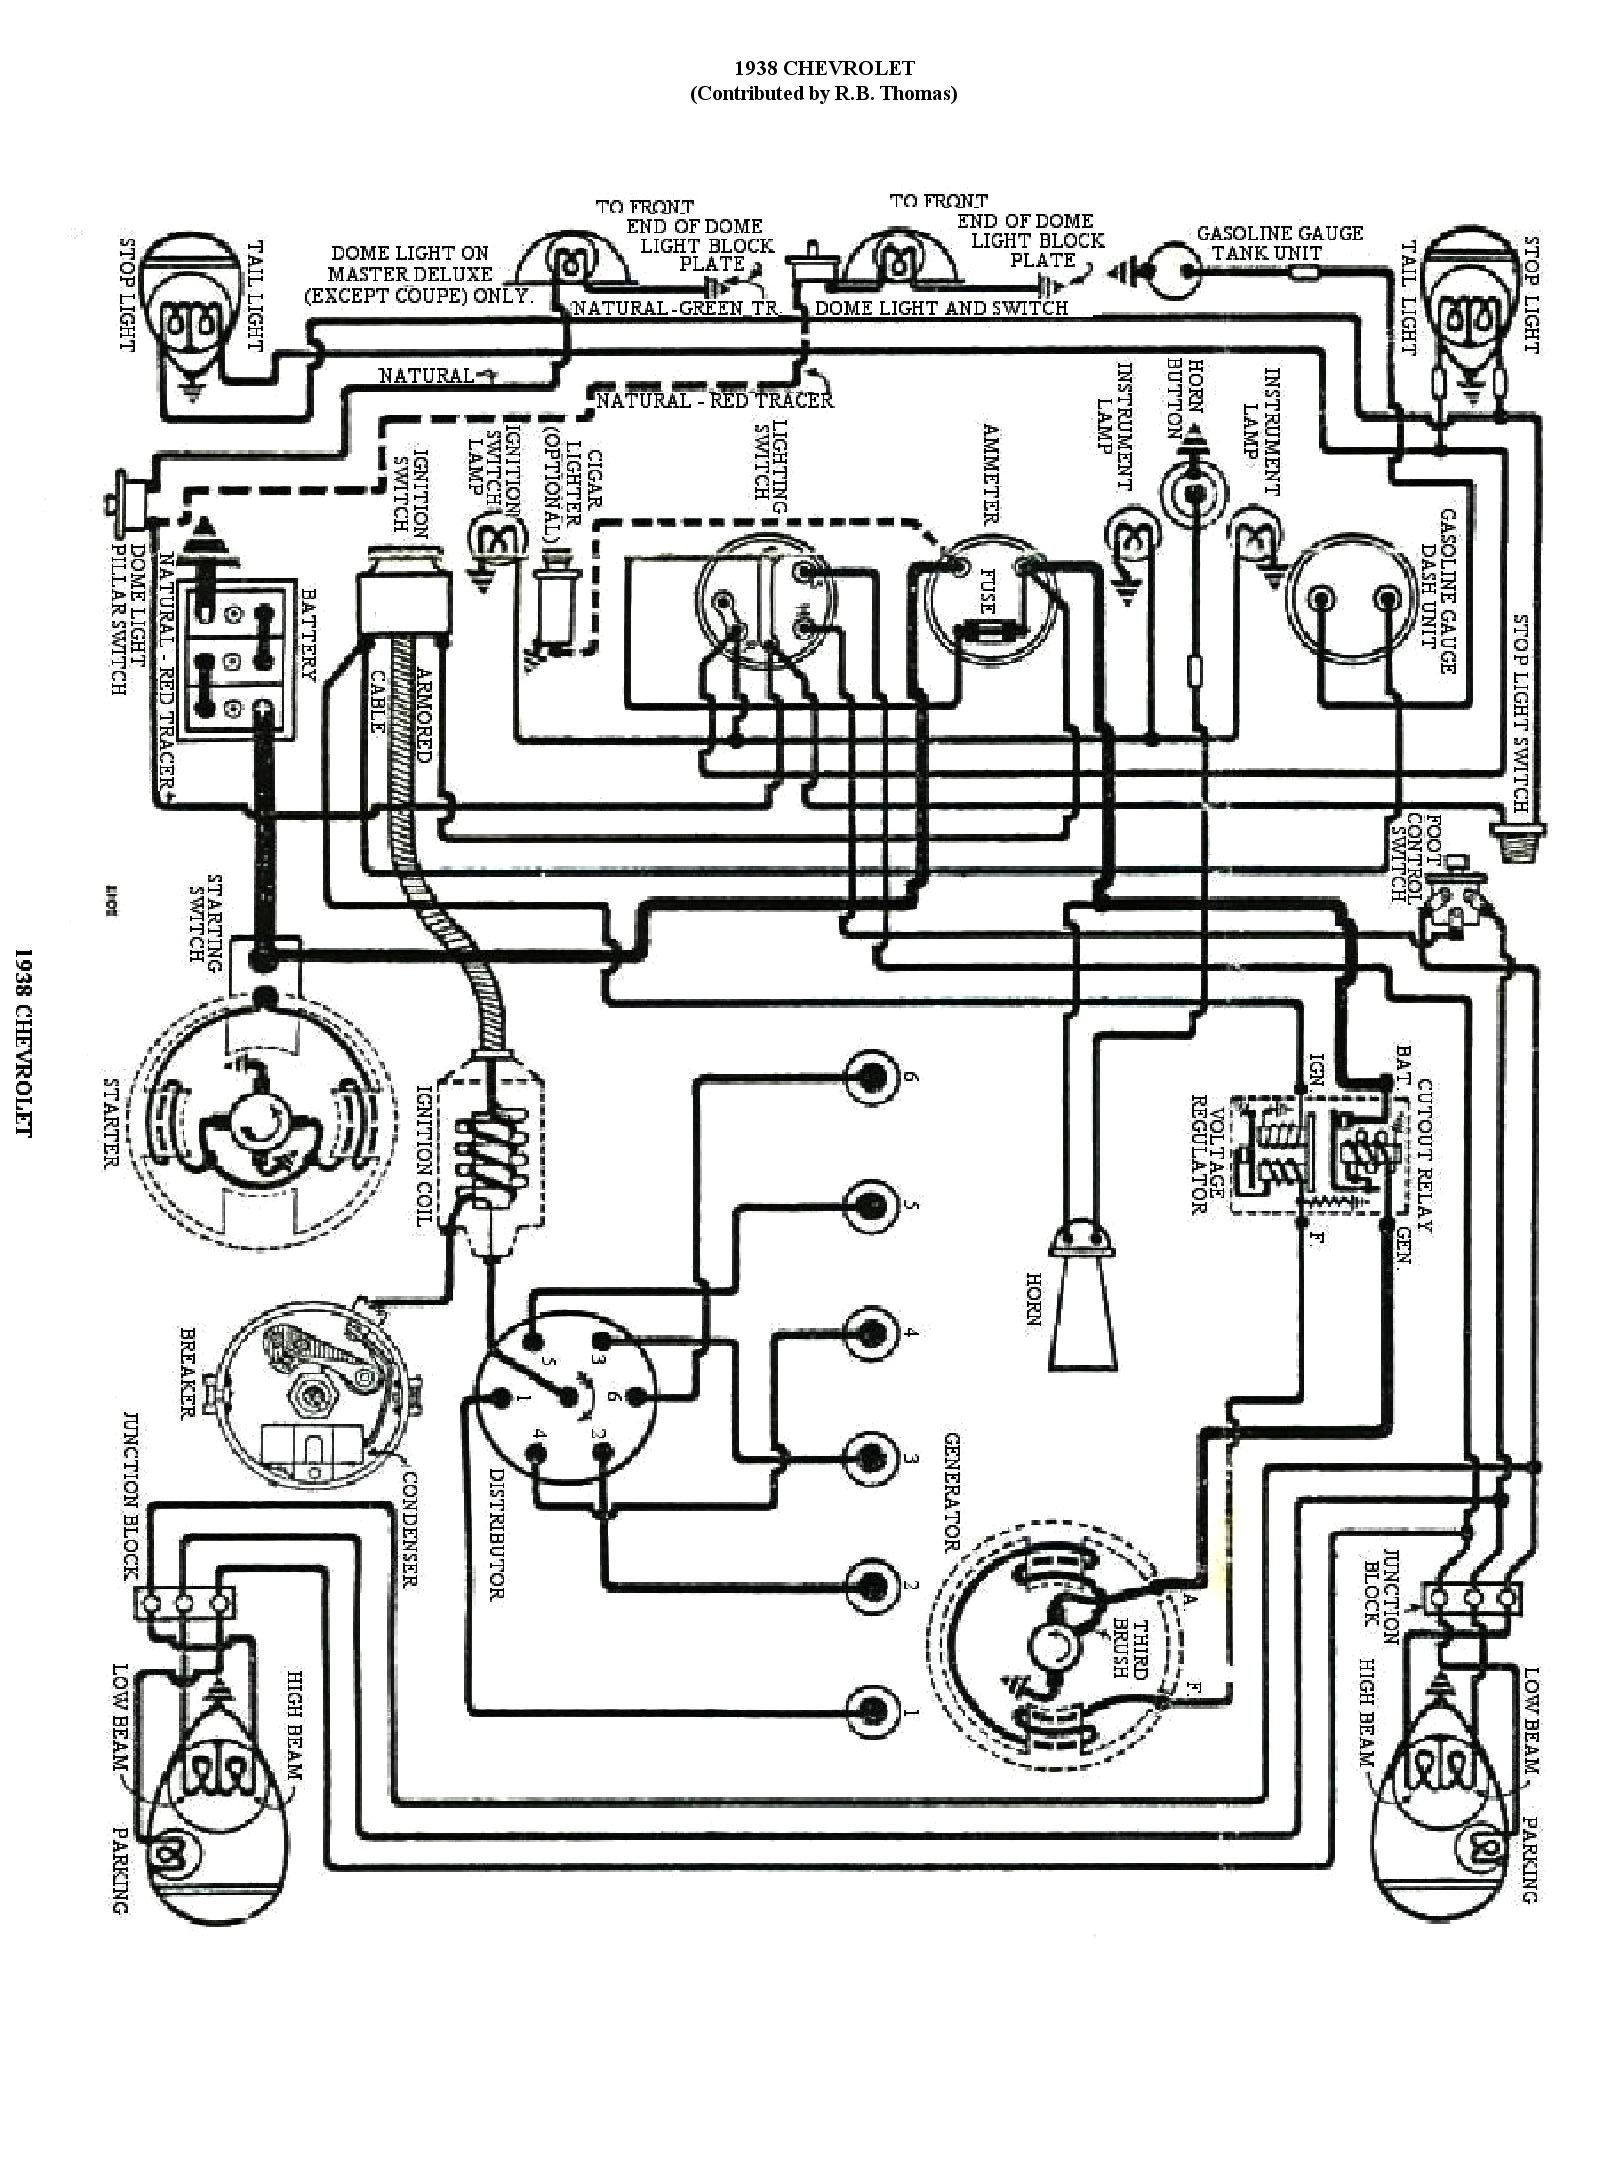 38wiring chevy wiring diagrams chevrolet wiring harness at aneh.co